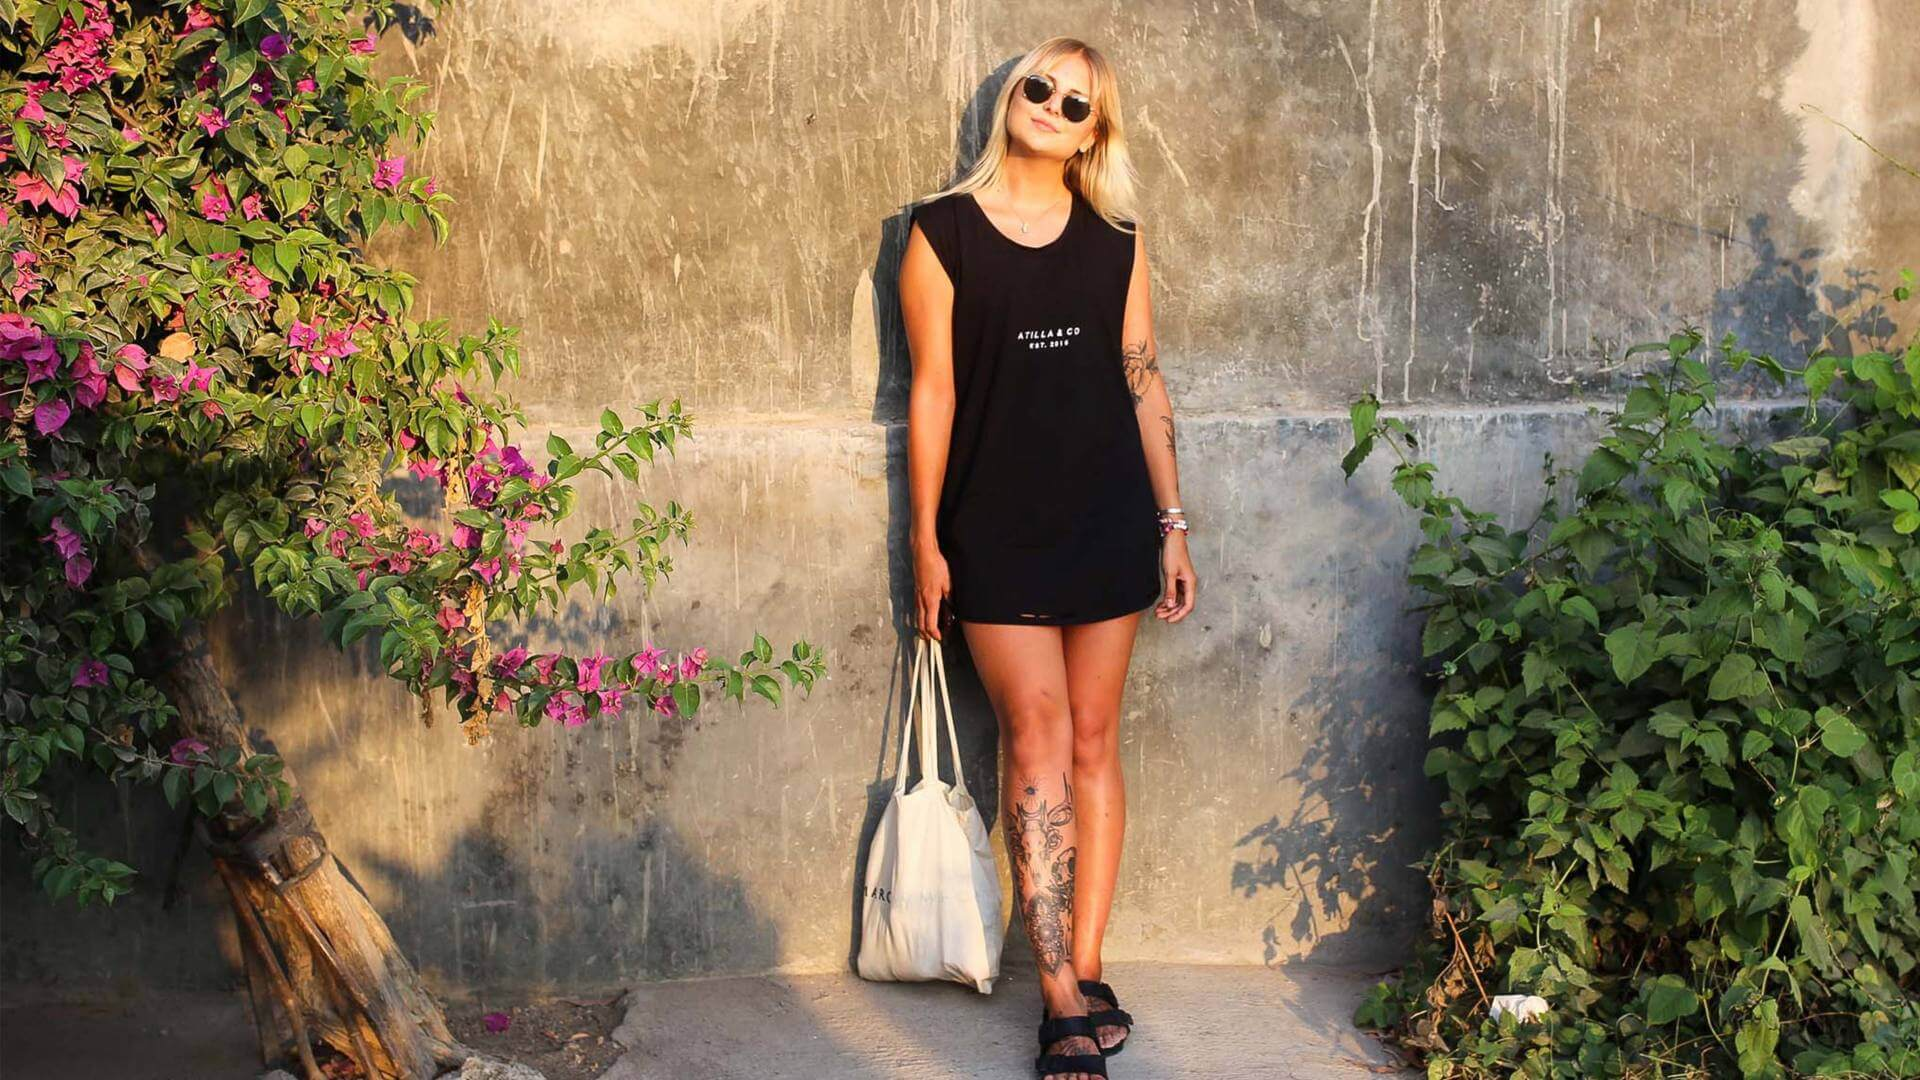 Blonde girl with sunglasses and black shirt is leaning against a wall in Bali.